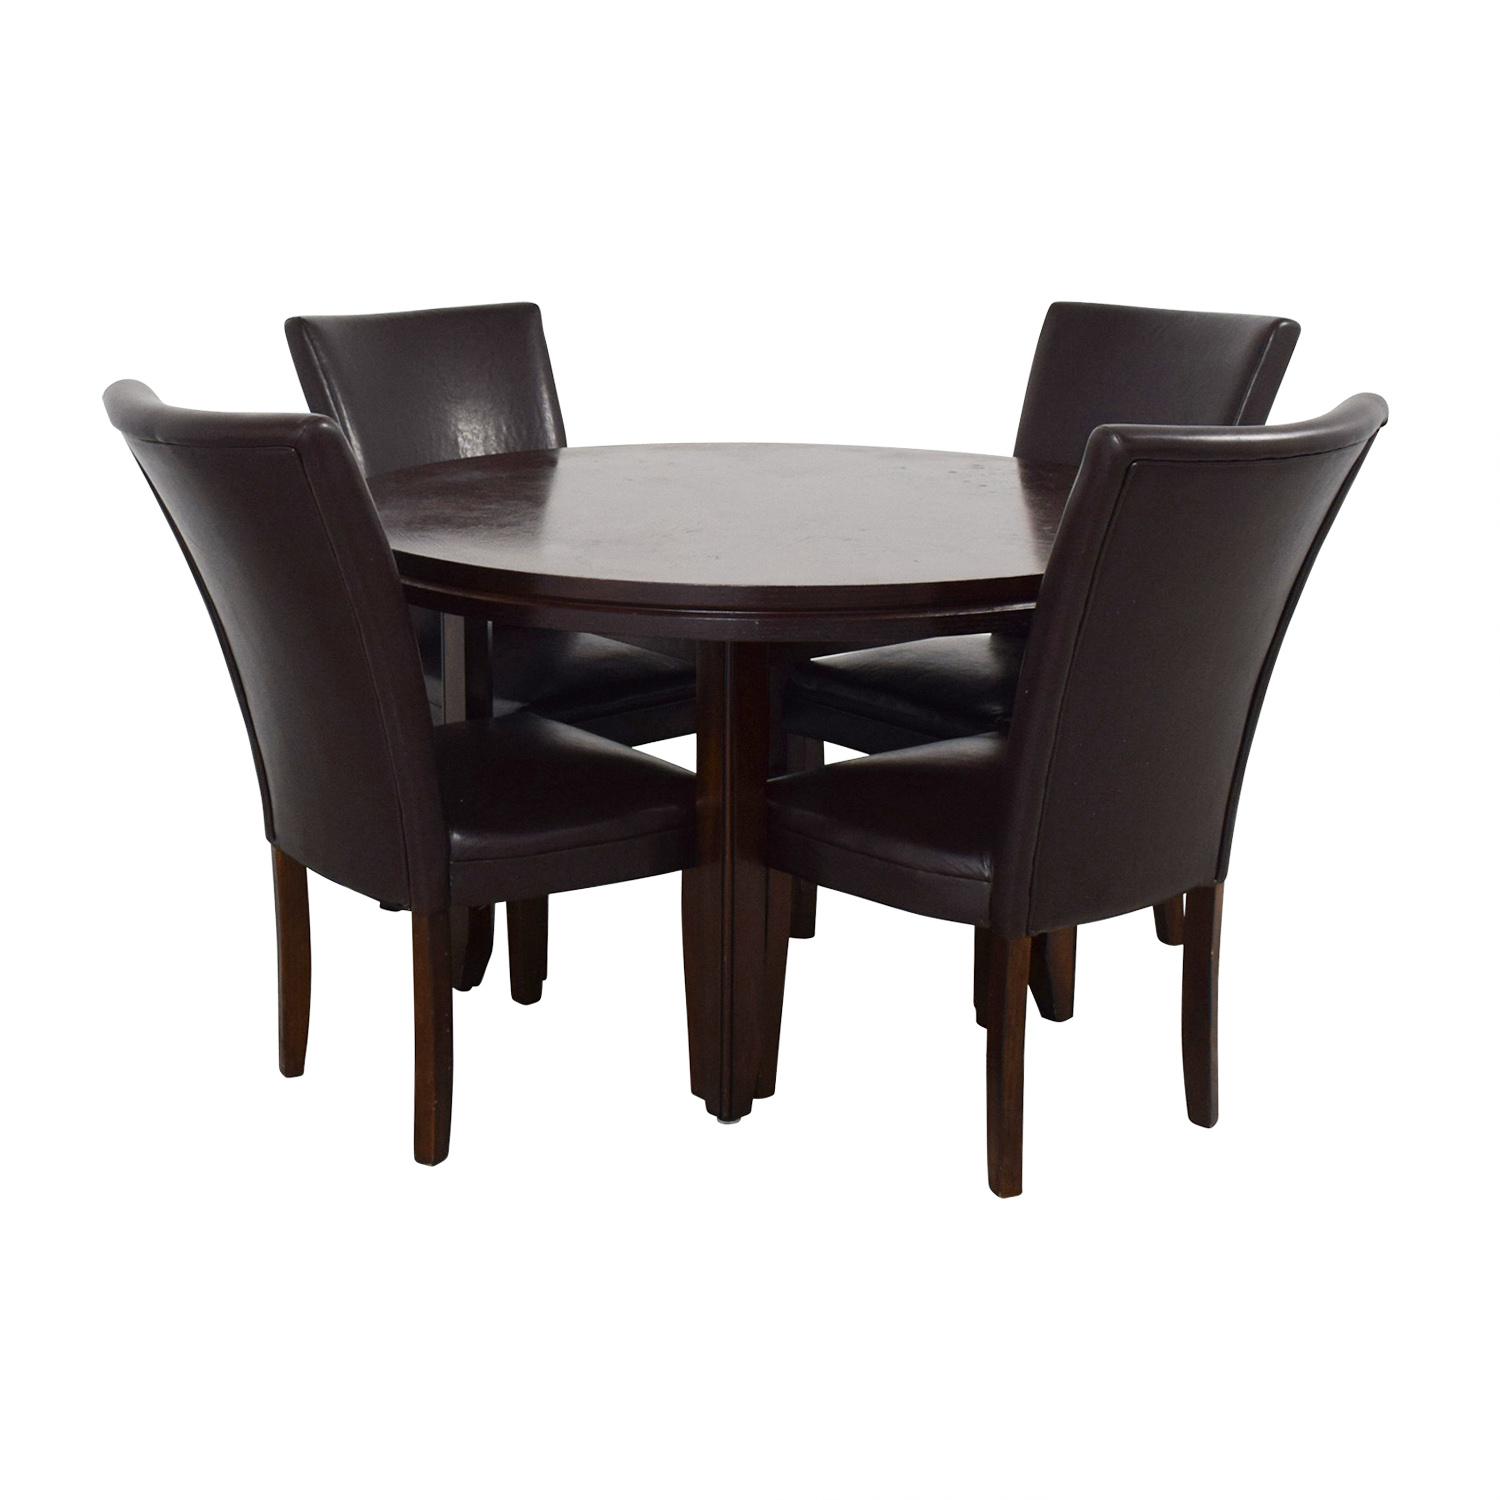 Leather Table Chairs: Round Wood Dining Table With Black Leather